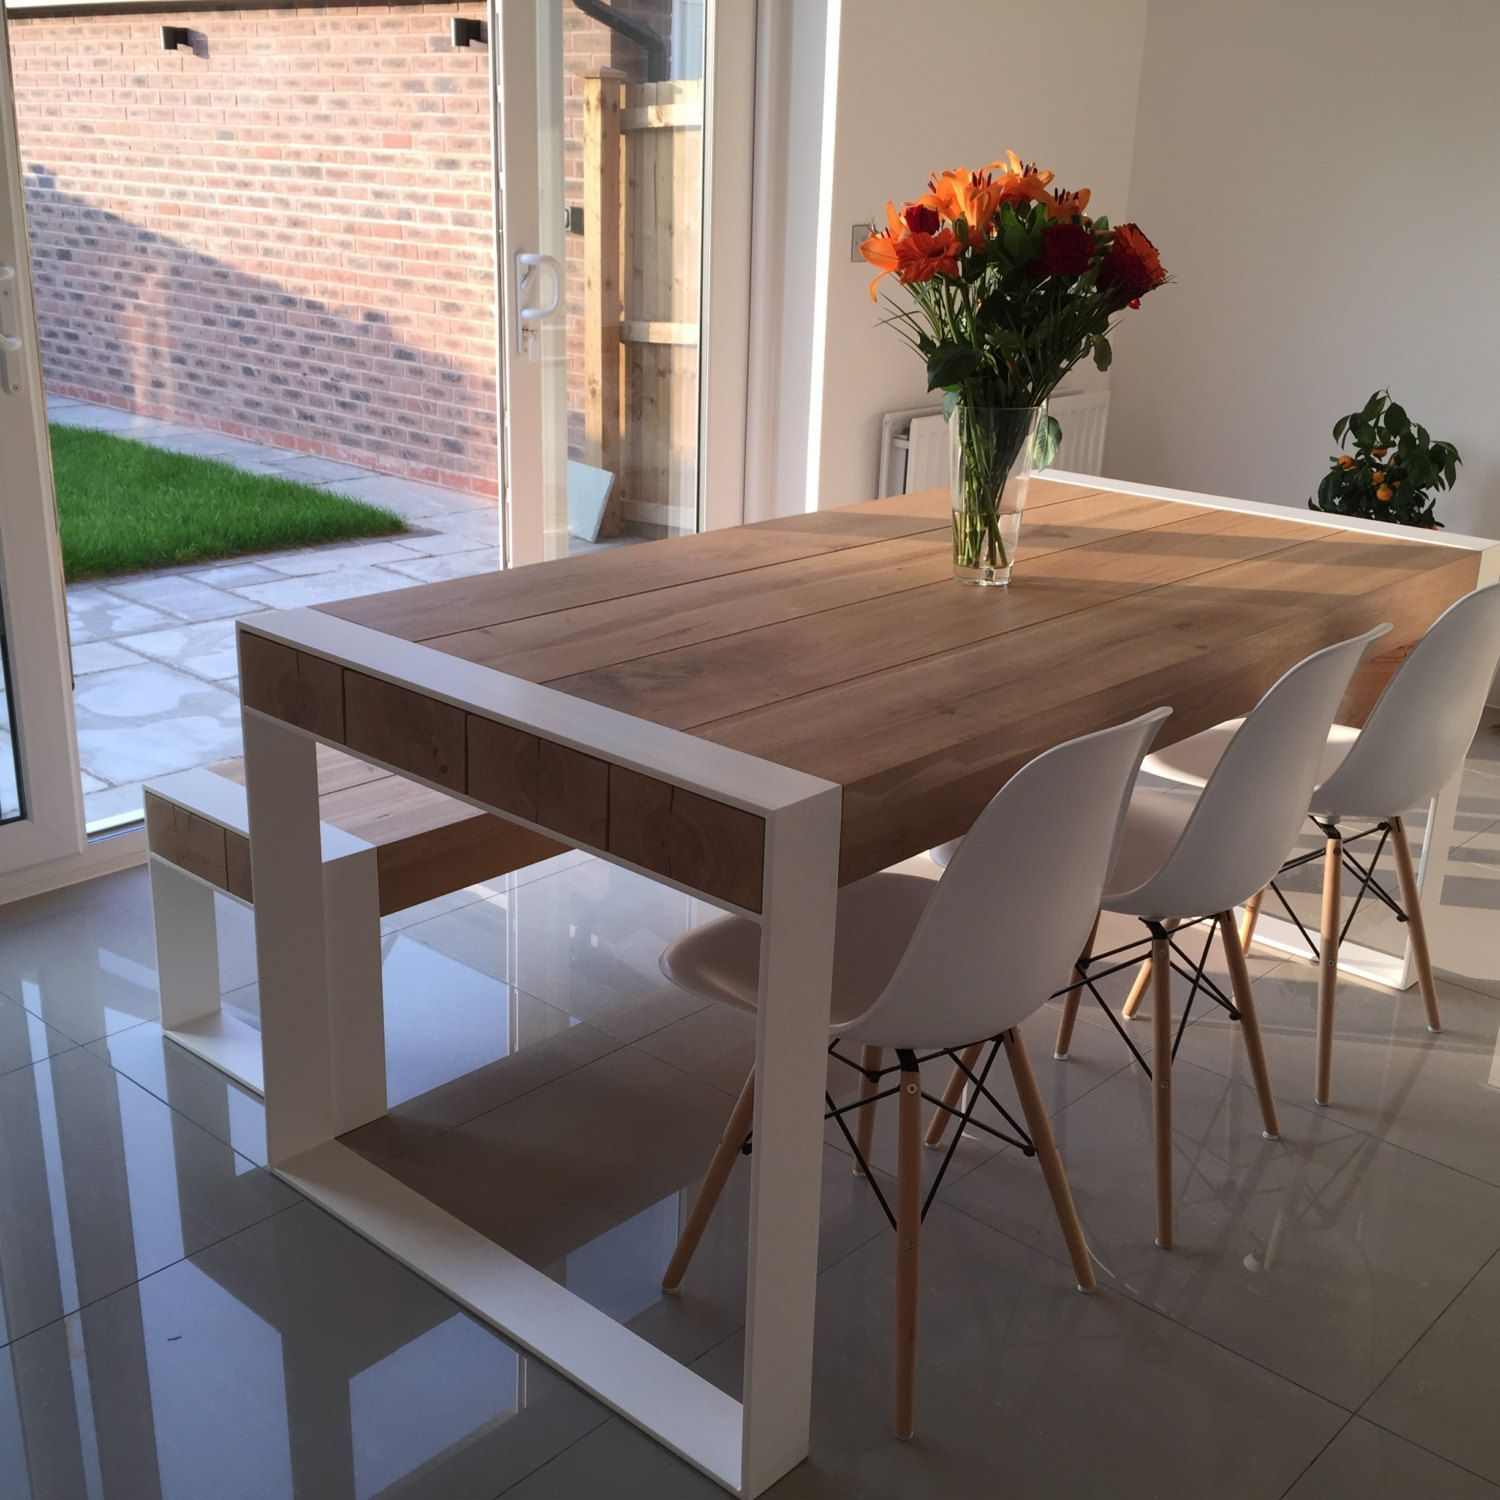 Pin By Megha Bansal On Dinner Room Kitchen Table Oak Timber Table Kitchen Table Settings